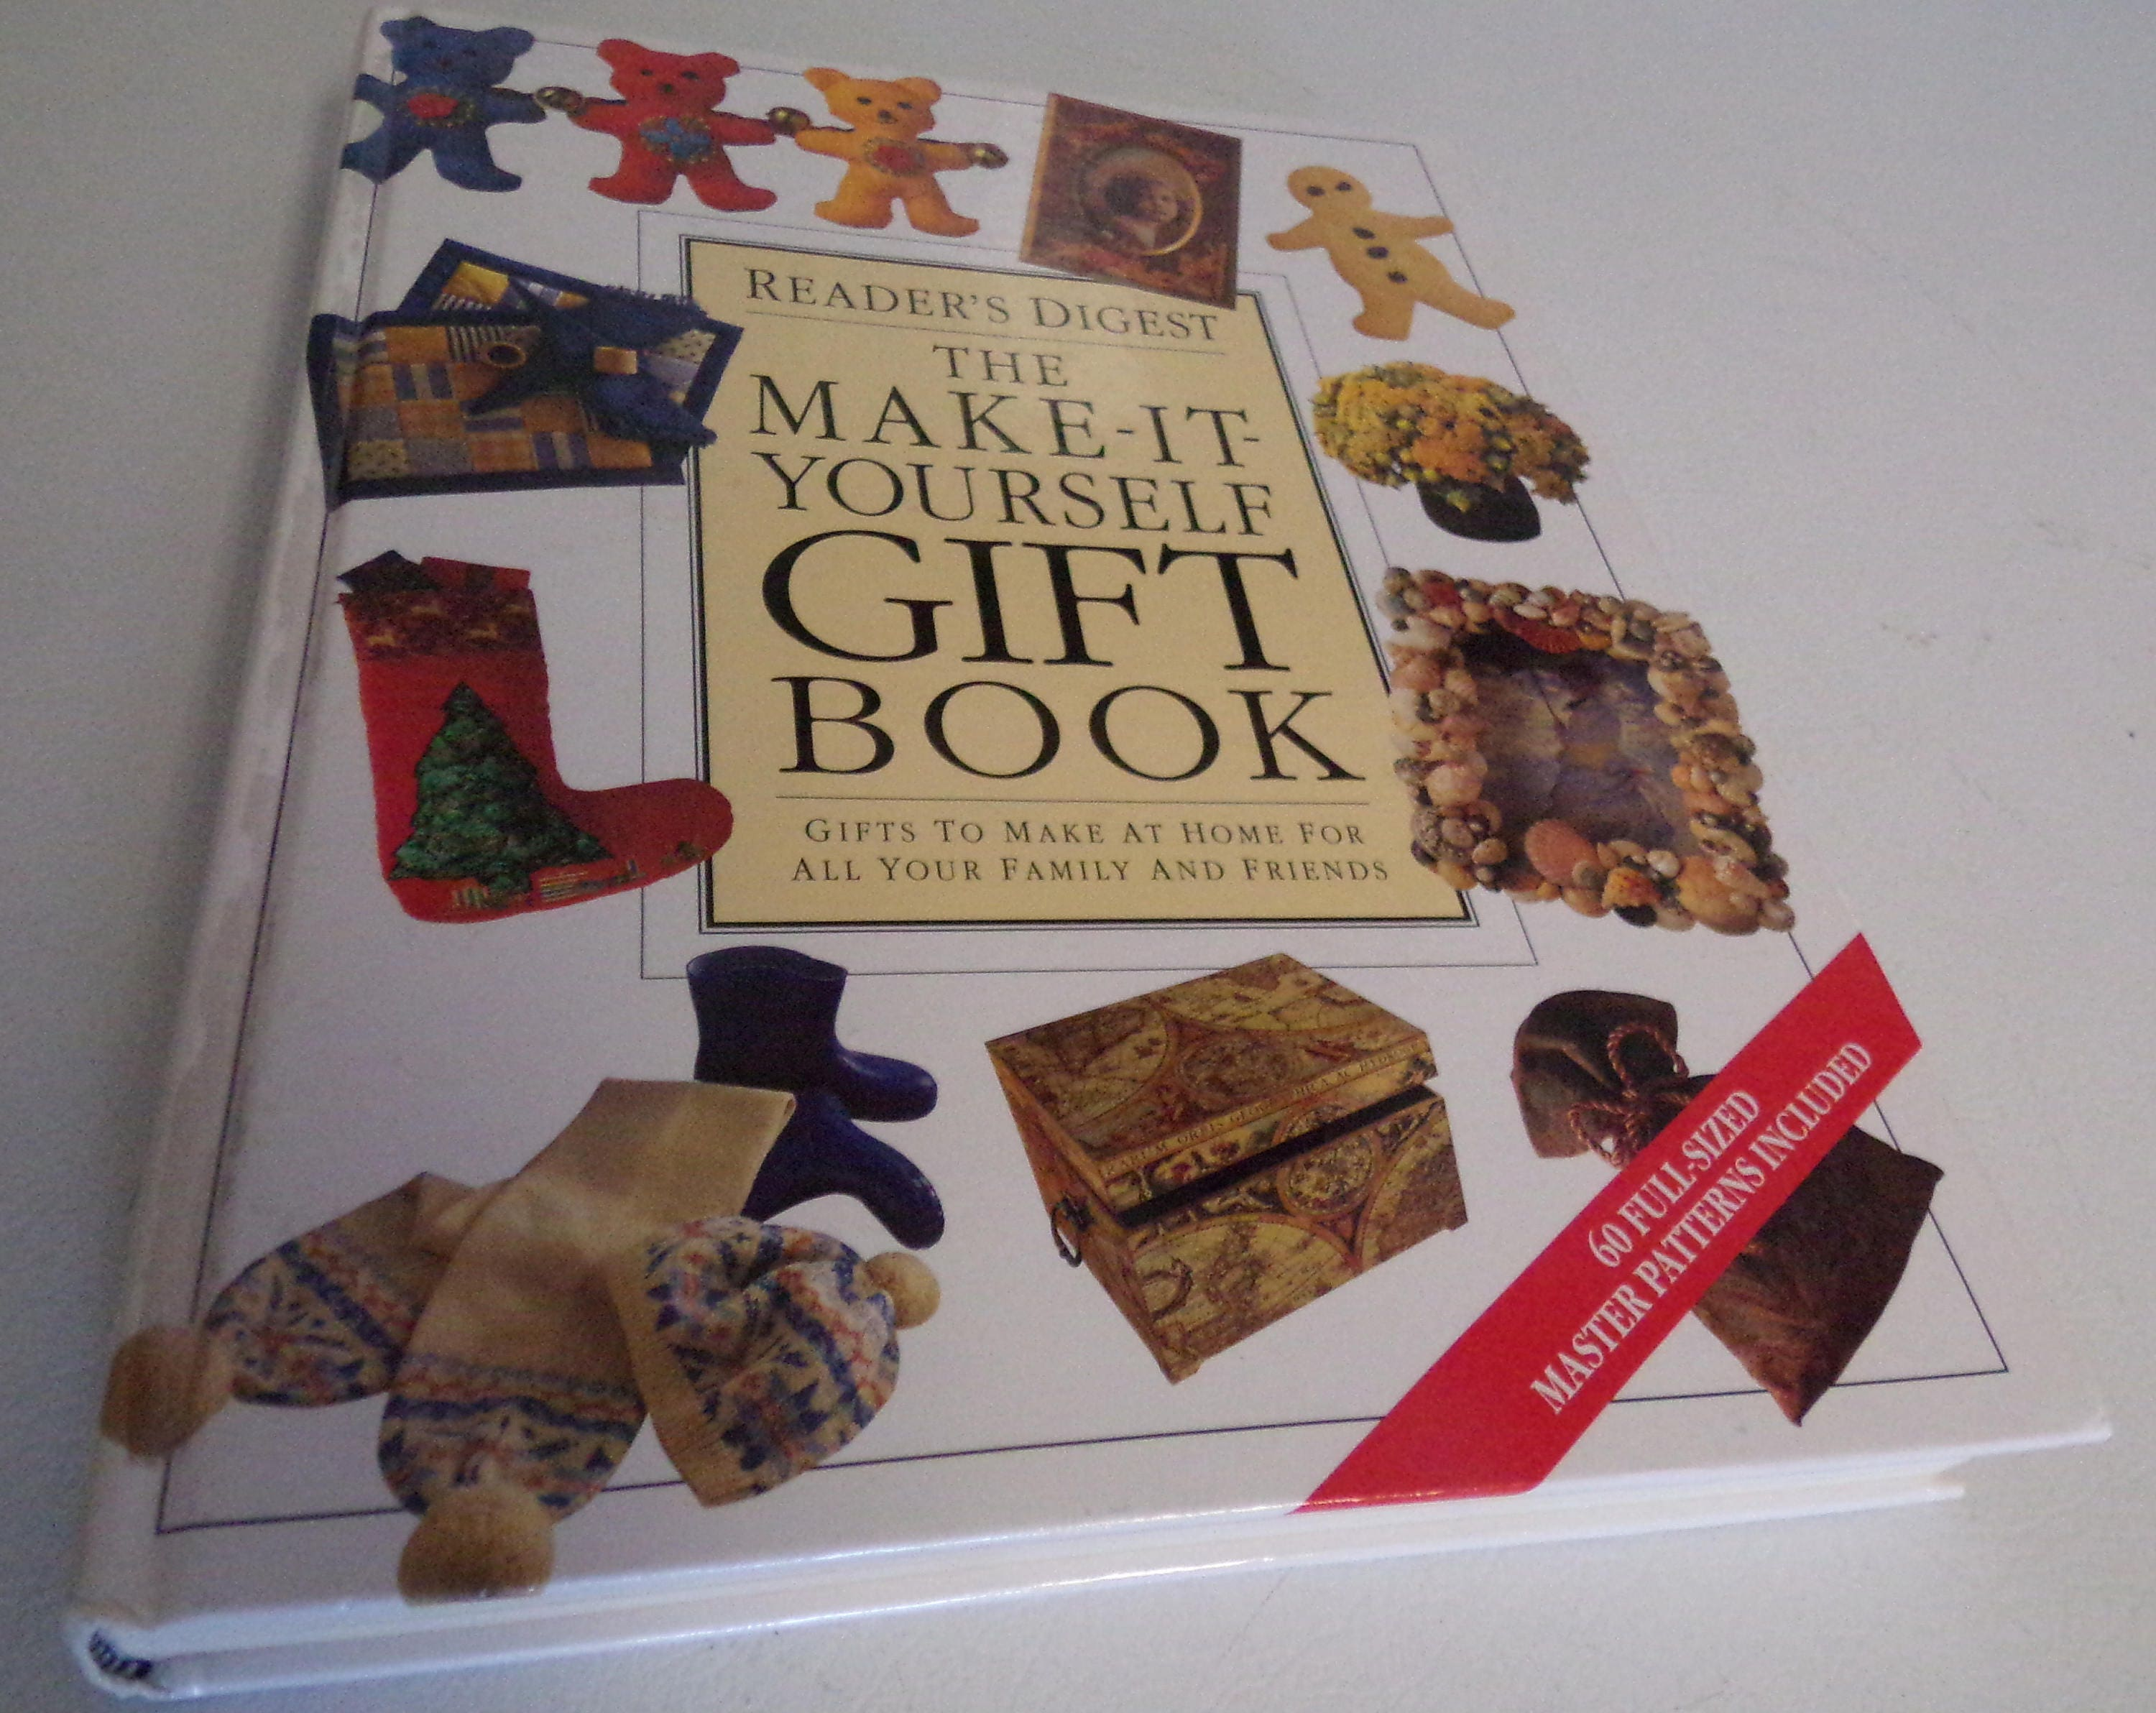 Readers digest the make it yourself gift book 1995 description have a readers digest hard cover craft book called the make it yourself gift solutioingenieria Choice Image